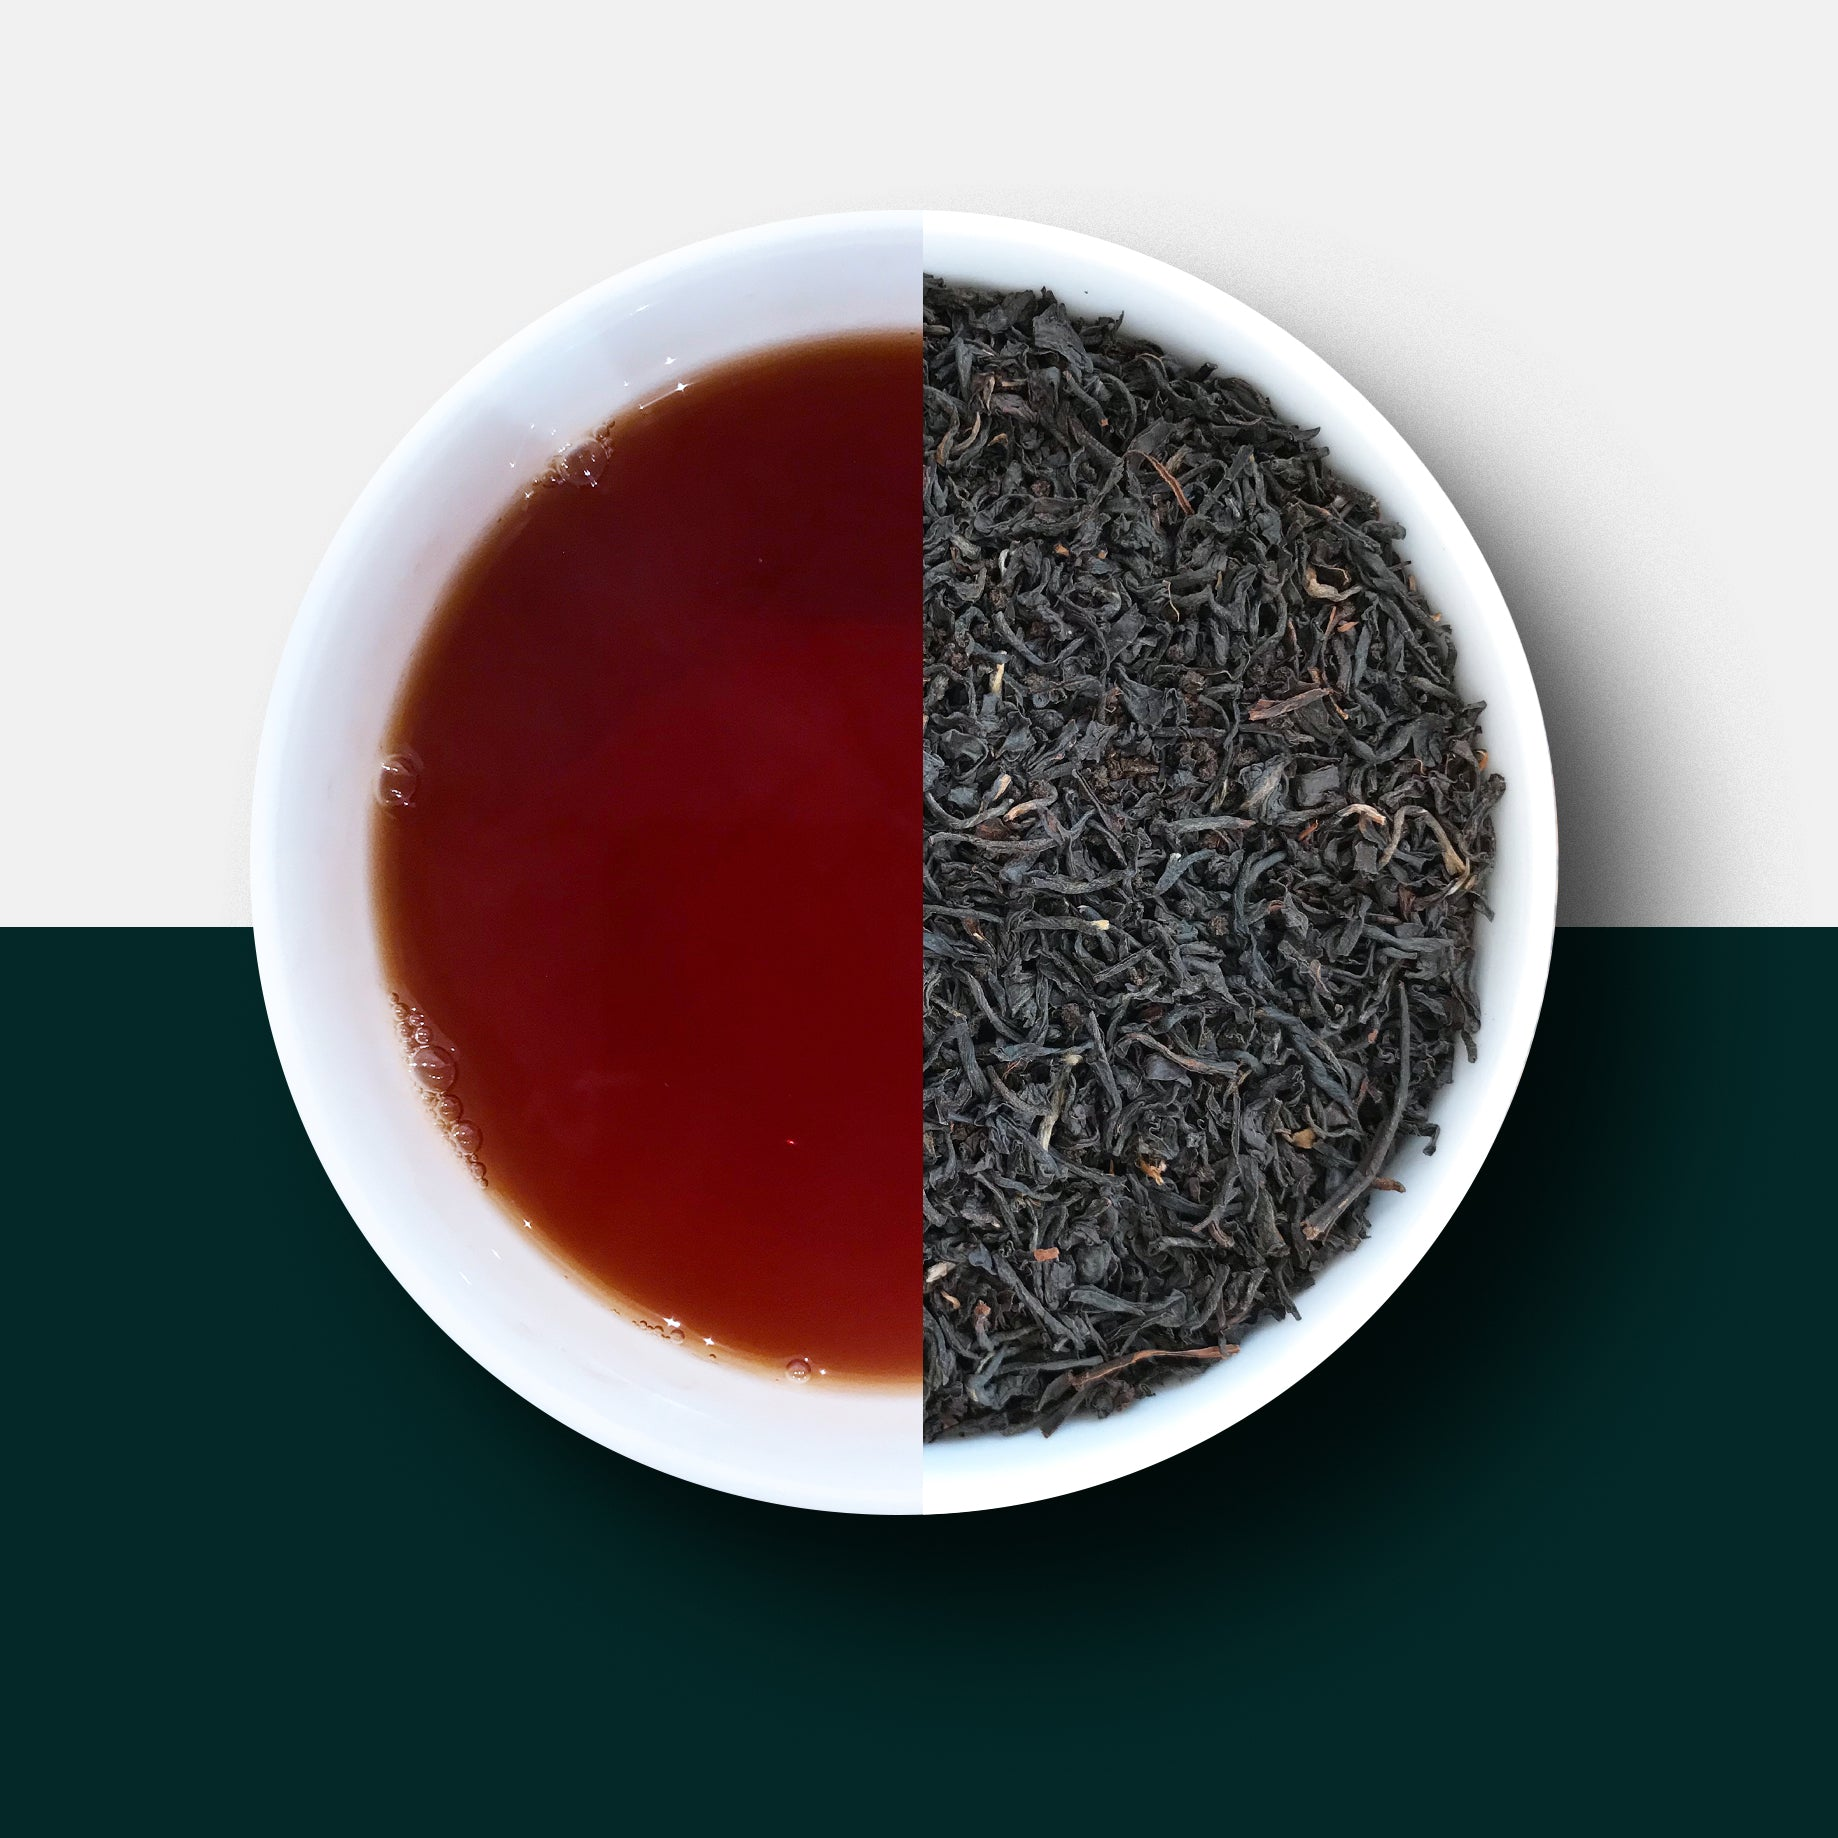 English breakfast tea loose leaves and liquid